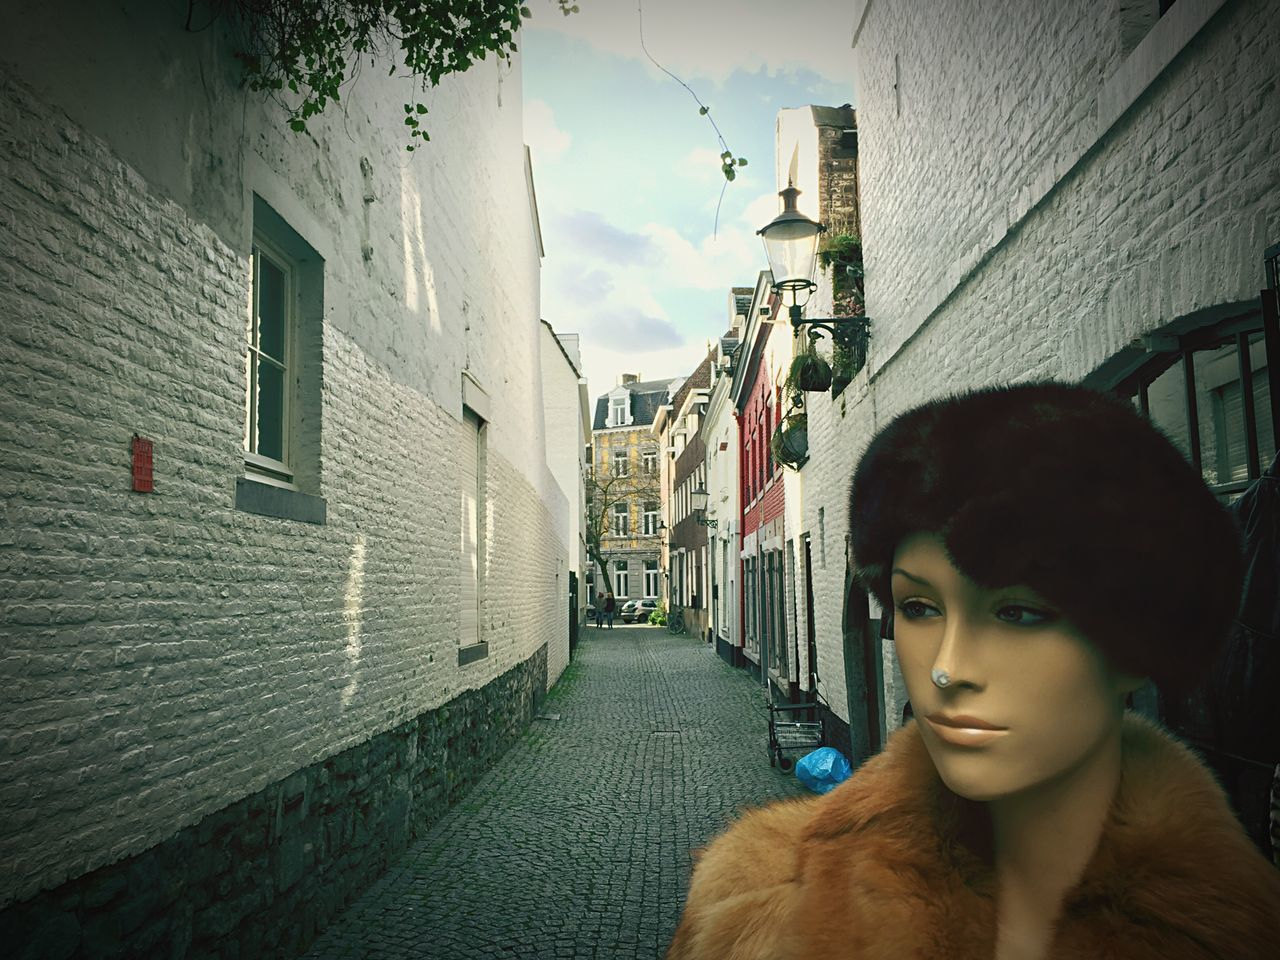 Lantaarnstraat in Maastricht. Maastricht Limburg Vintage Mannequin Netherlands Alley Alleyway Holland